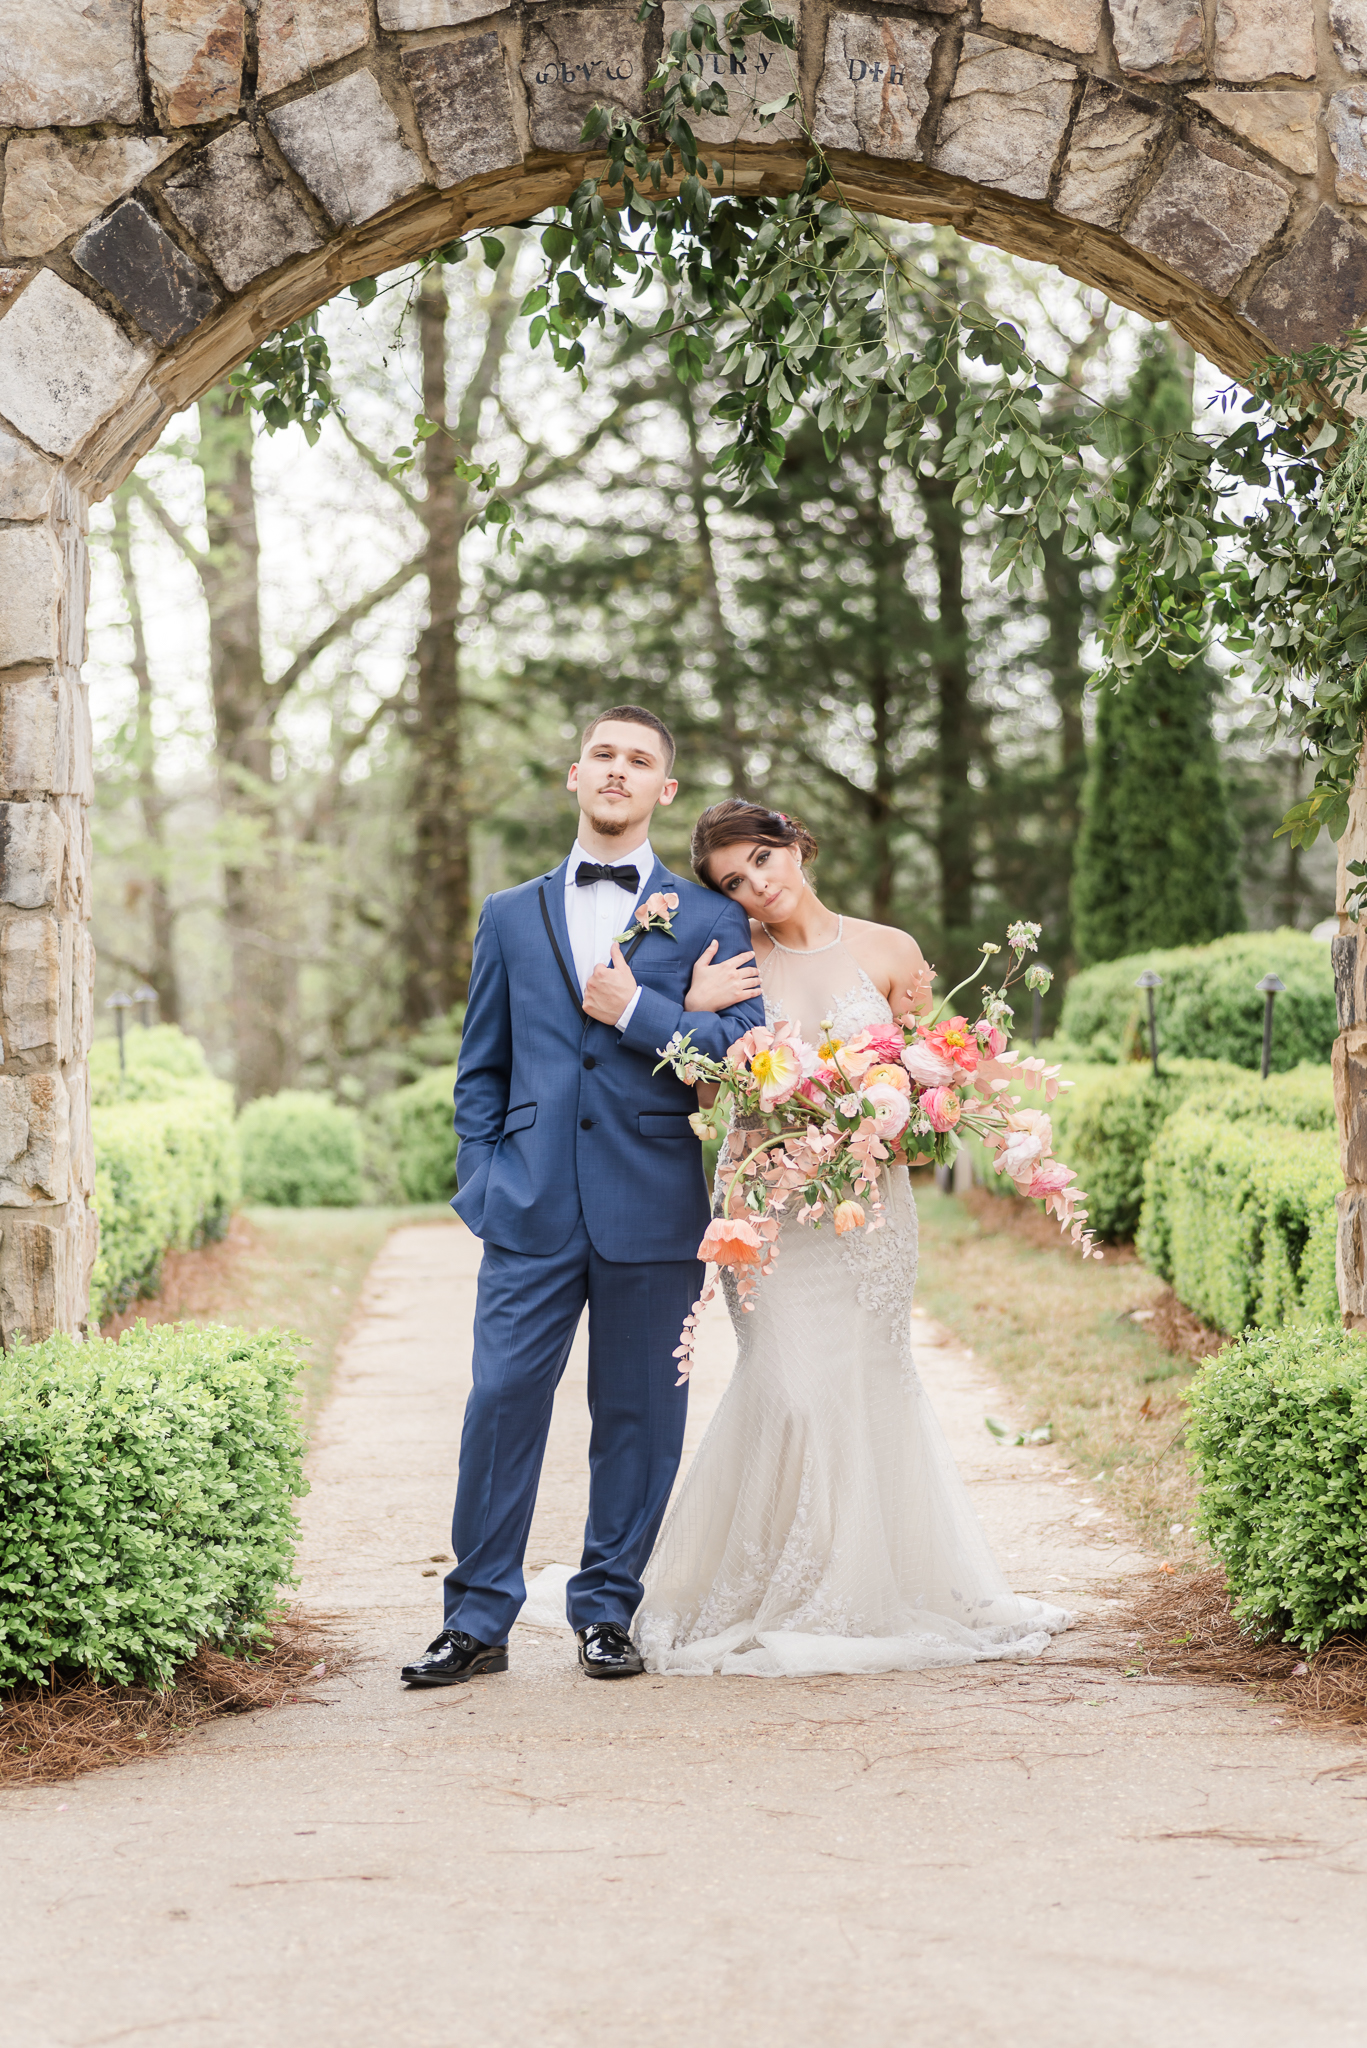 The Best Light and Airy Indianapolis Wedding Photographers-5.jpg